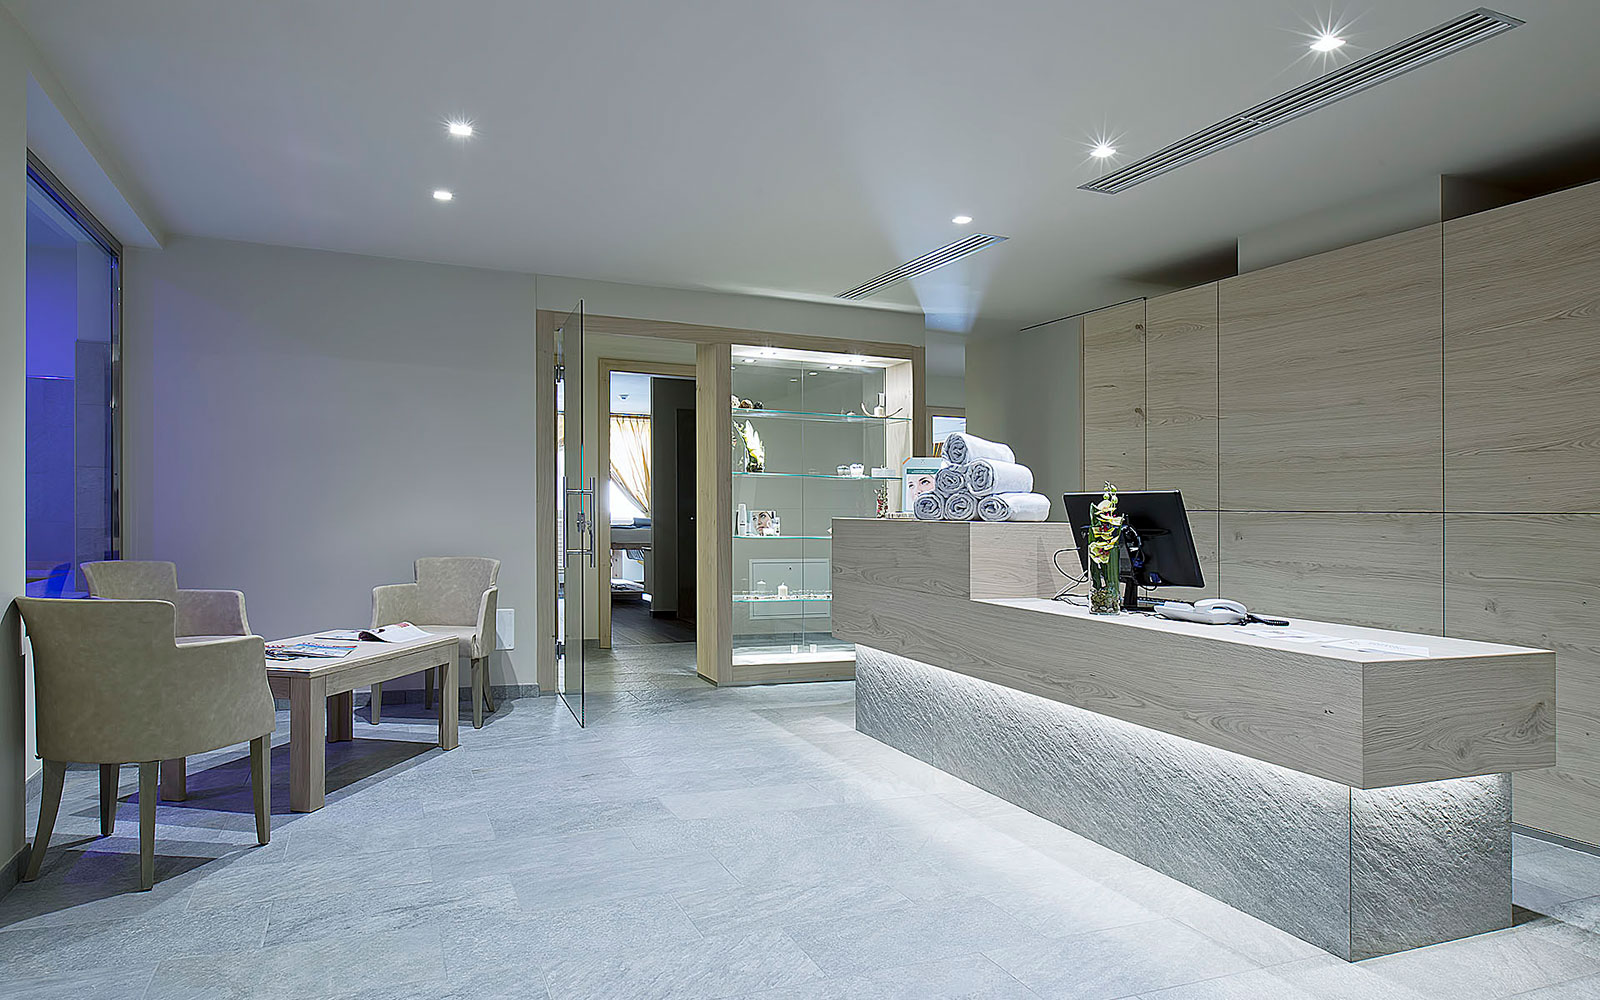 RECEPTION<br>CIARNADOI DESIGN & SUITE HOTEL - VIGO DI FASSA